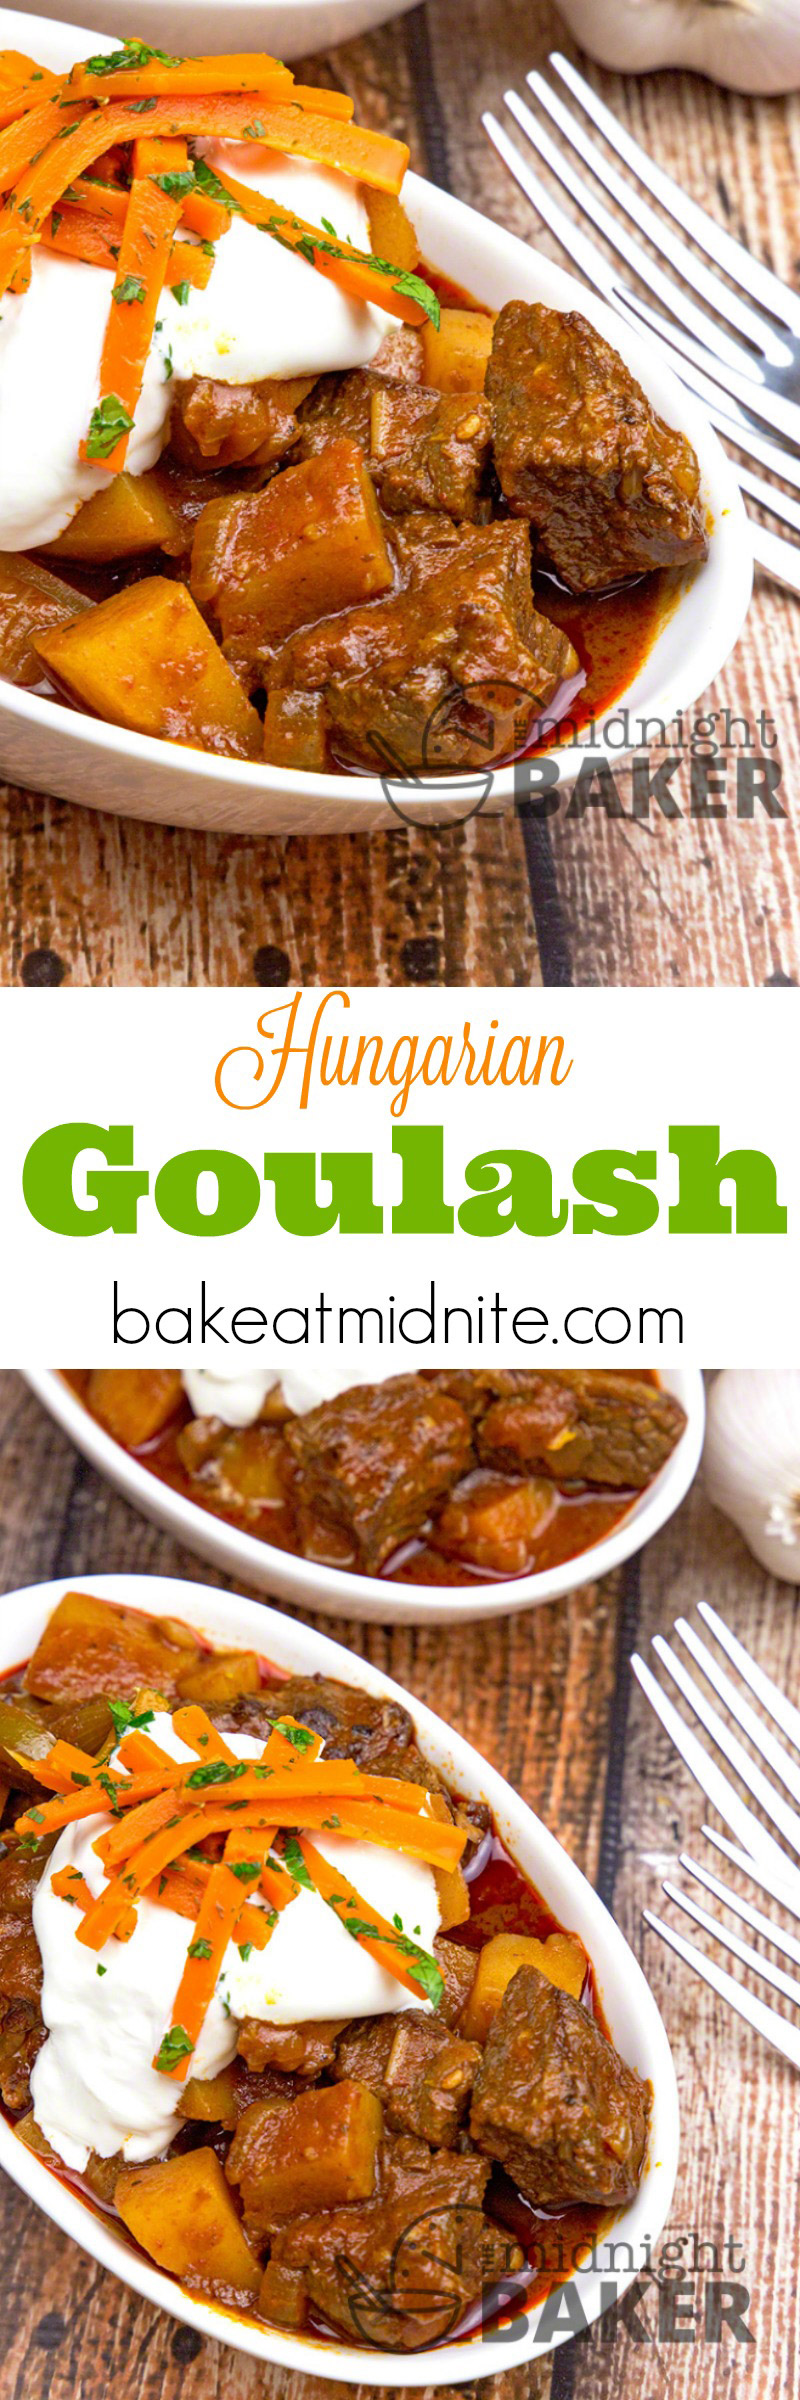 Authentic Hungarian Goulash is warm, comforting and easy to make! Surprise ingredient makes the flavor sing.